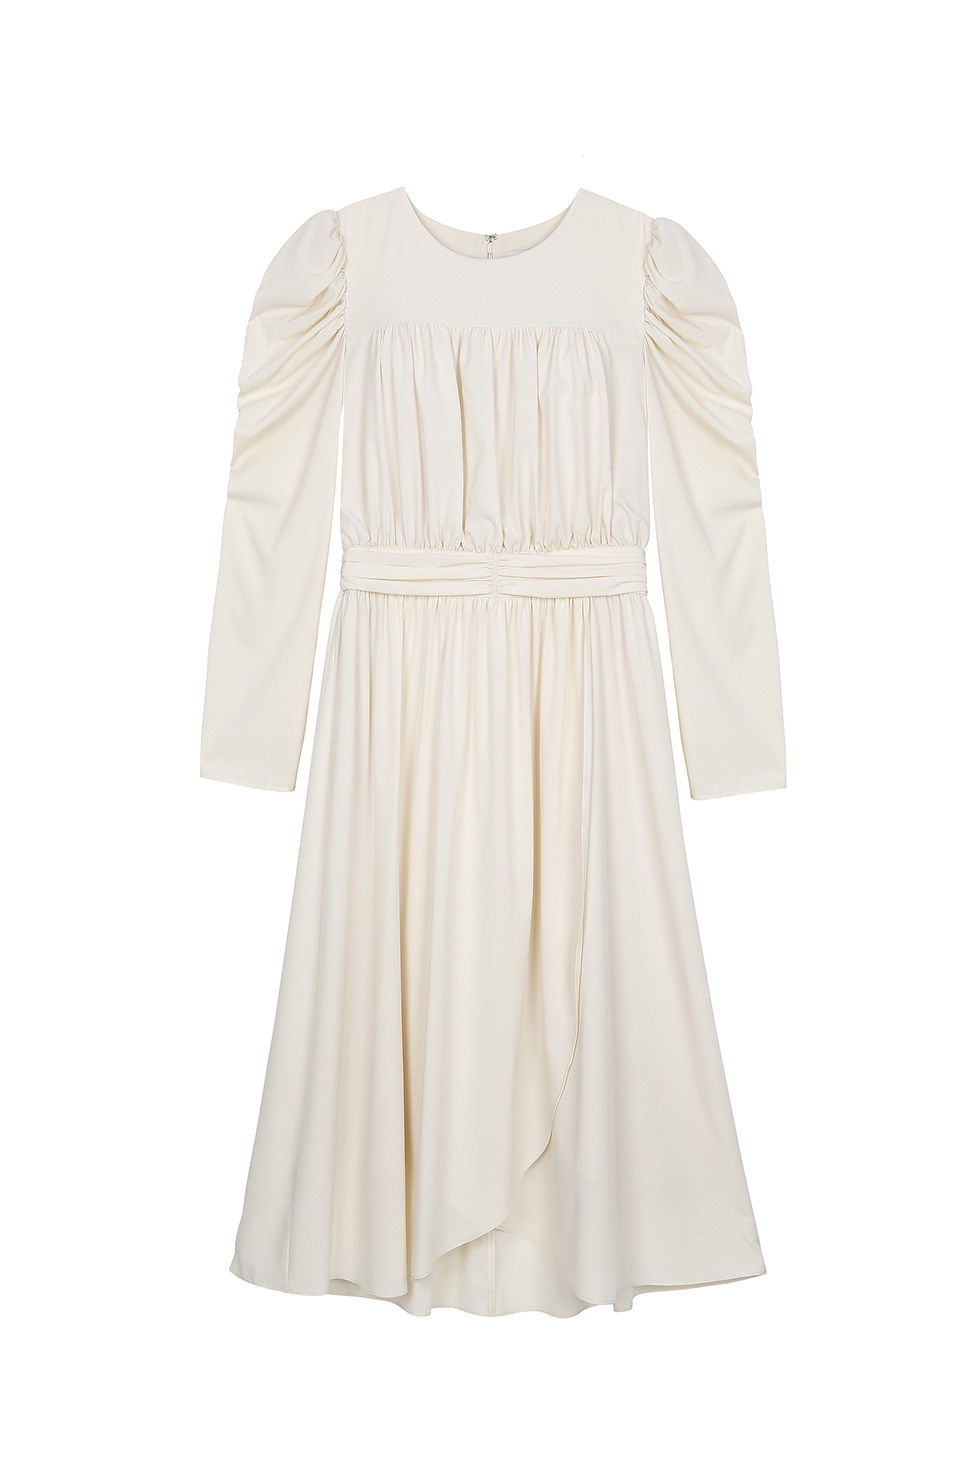 SHIRRING LONG DRESS - IVORY